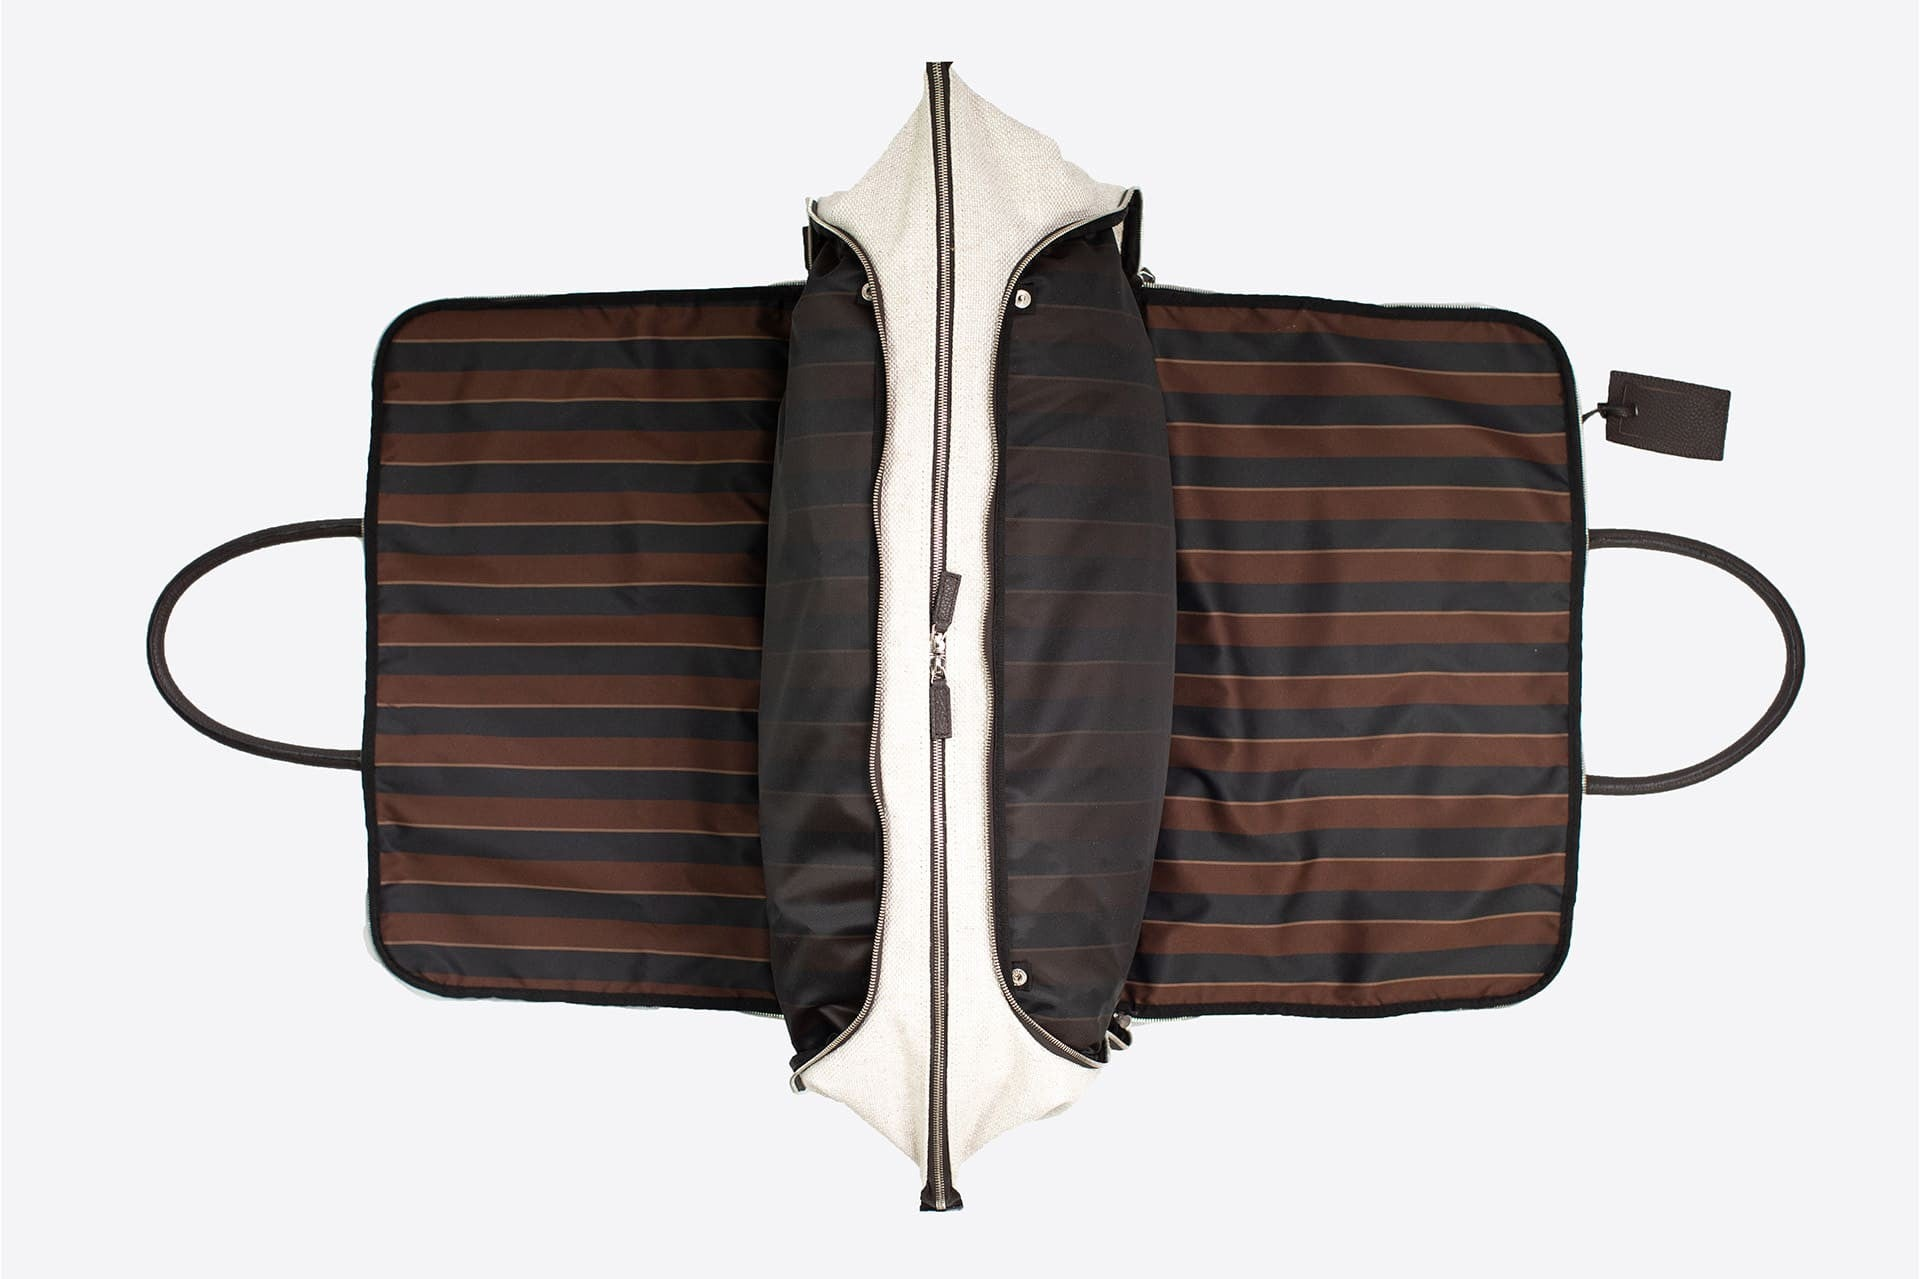 The World's First suit travel bag  with a patented Travel Garment Bag wrinkle-free